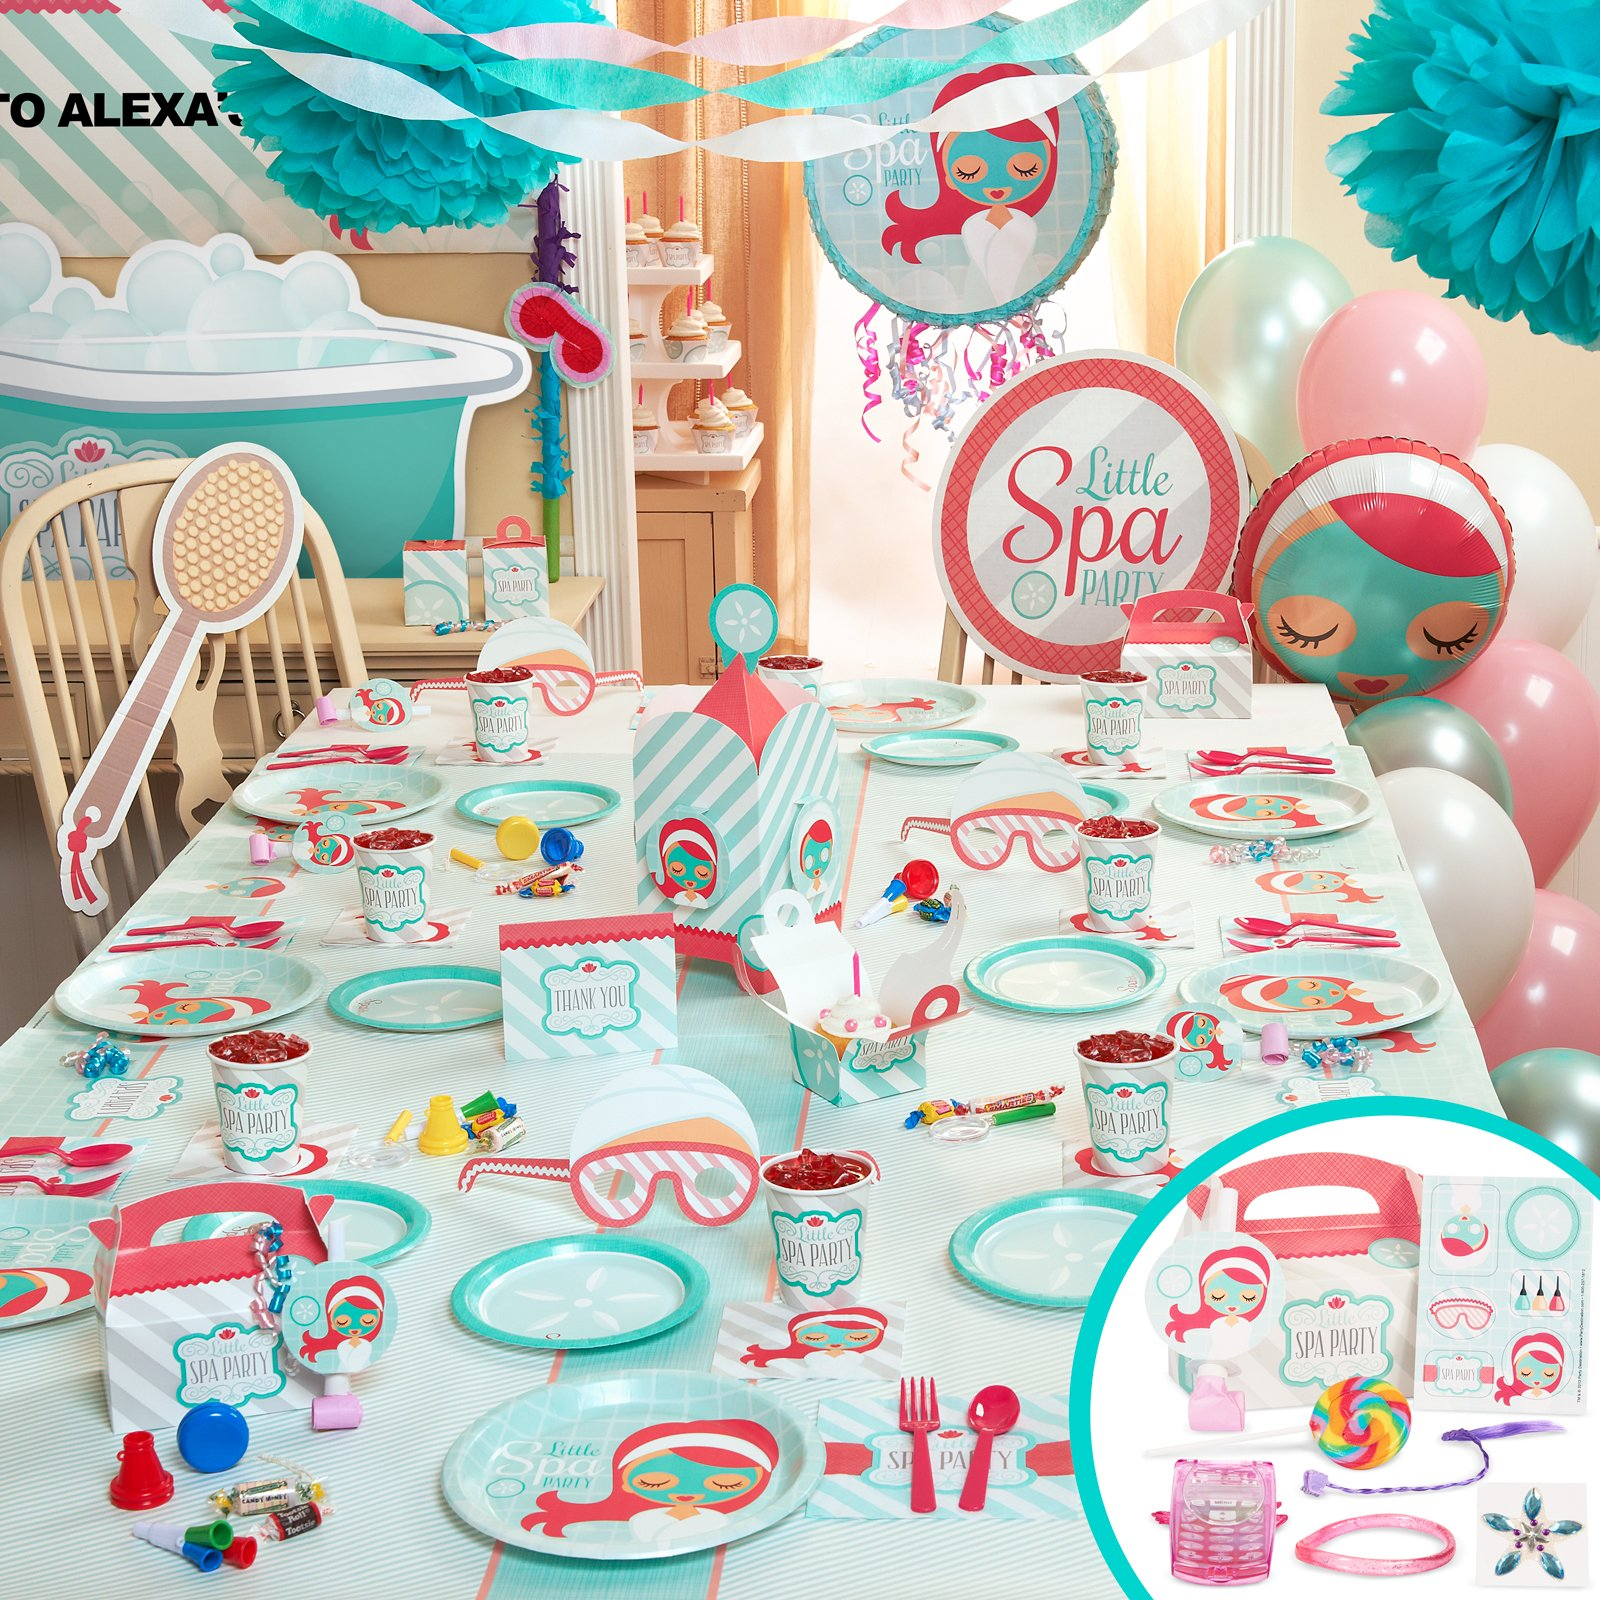 Spa Party Favors for Tweens